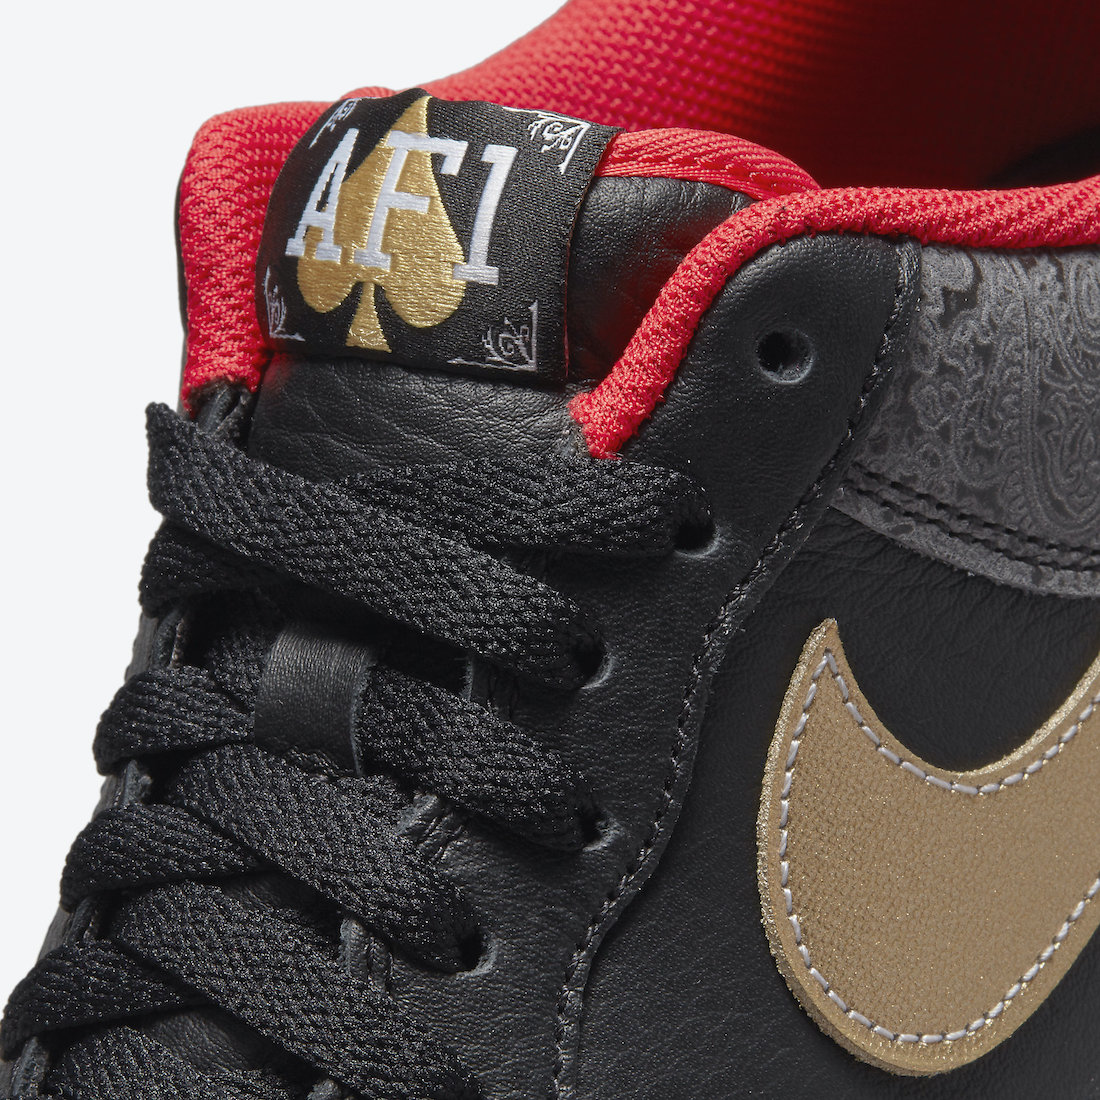 Nike Air Force 1 Low Spades King Queen DJ5184-001 Release Date